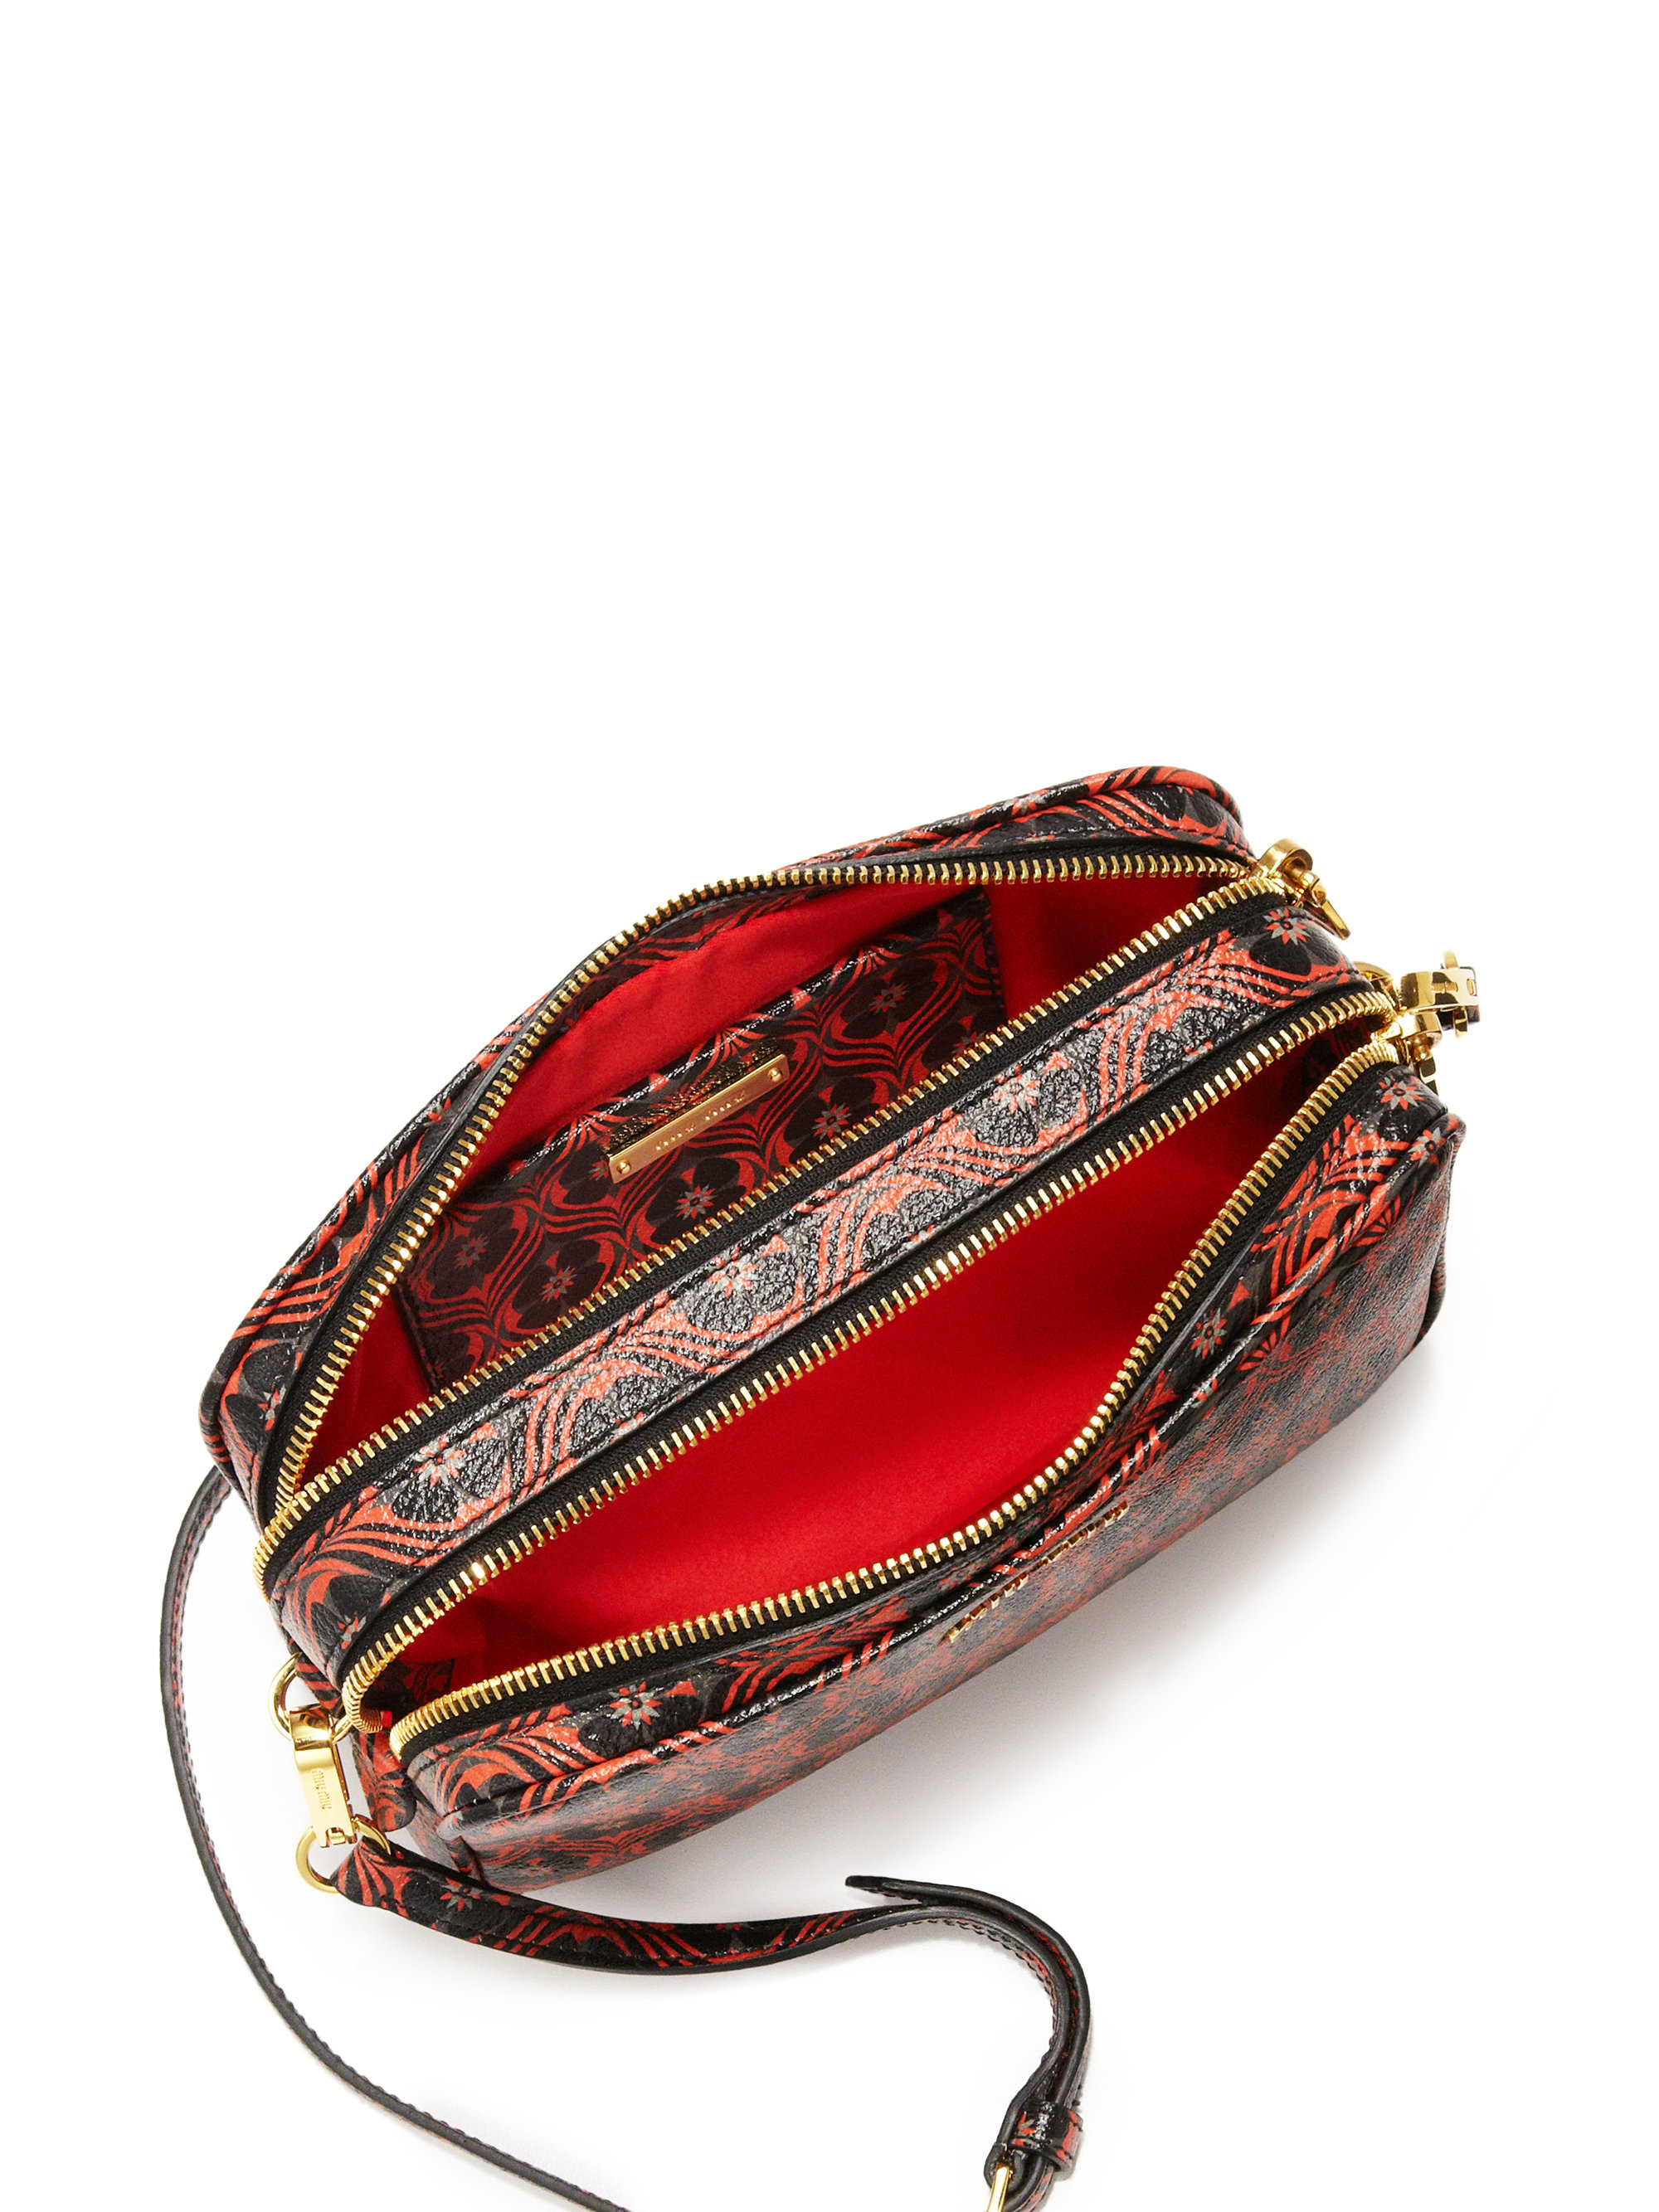 Miu Miu Madras Floral-print Camera Bag In Red | Lyst